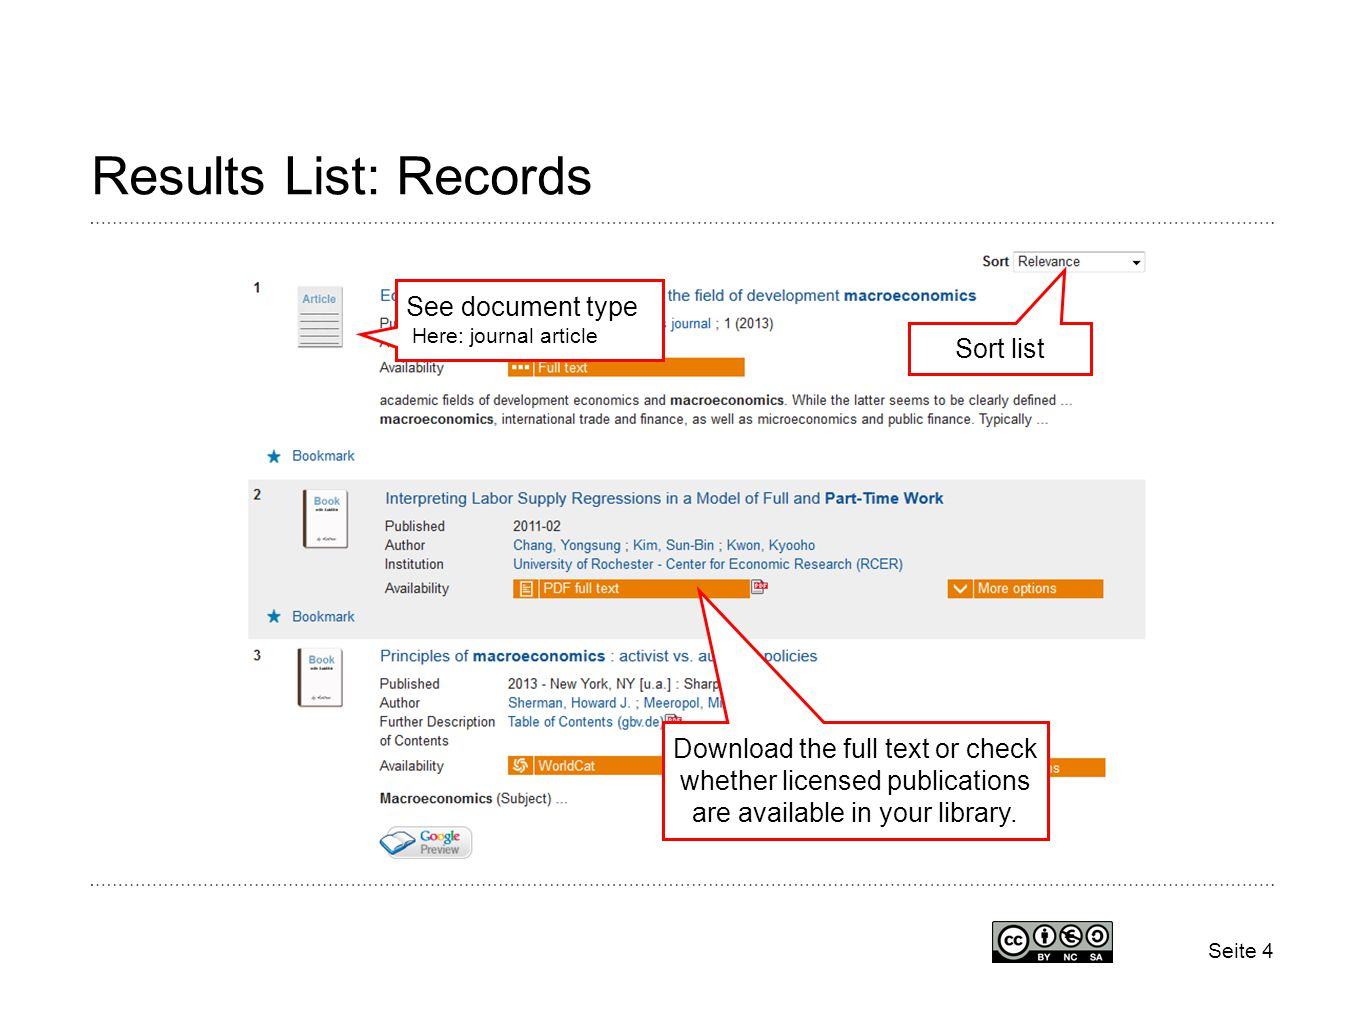 Seite 4 Results List: Records Download the full text or check whether licensed publications are available in your library.